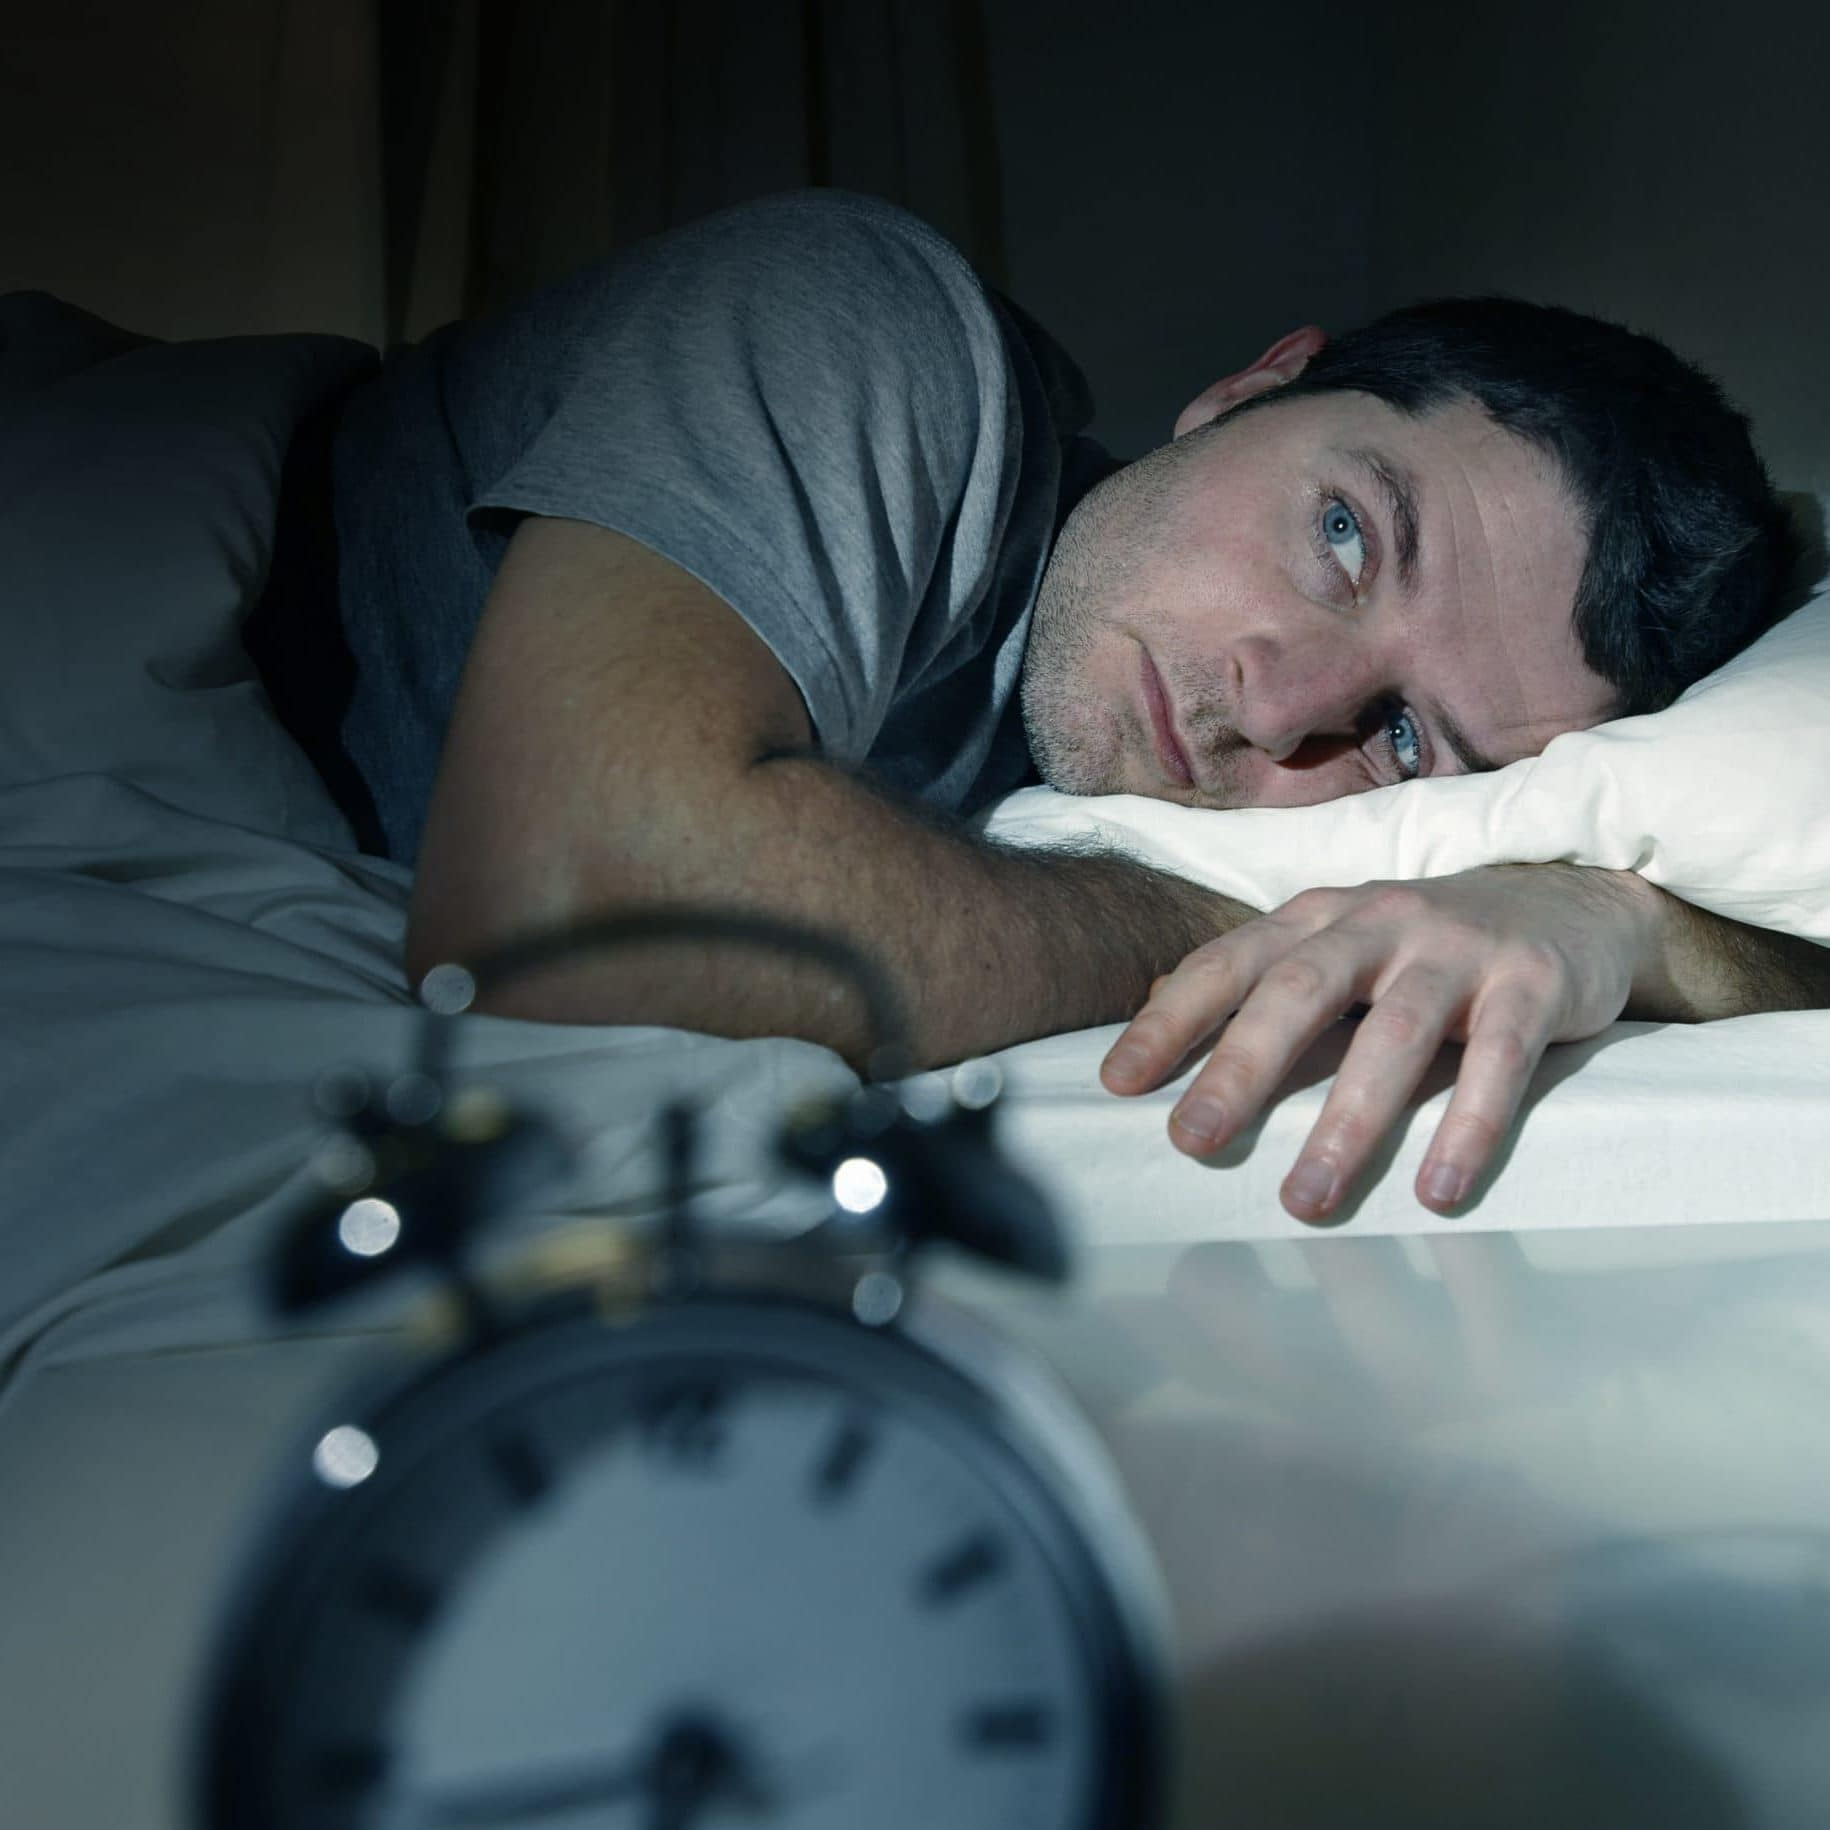 insomina and sleep problems solved by hypnosis